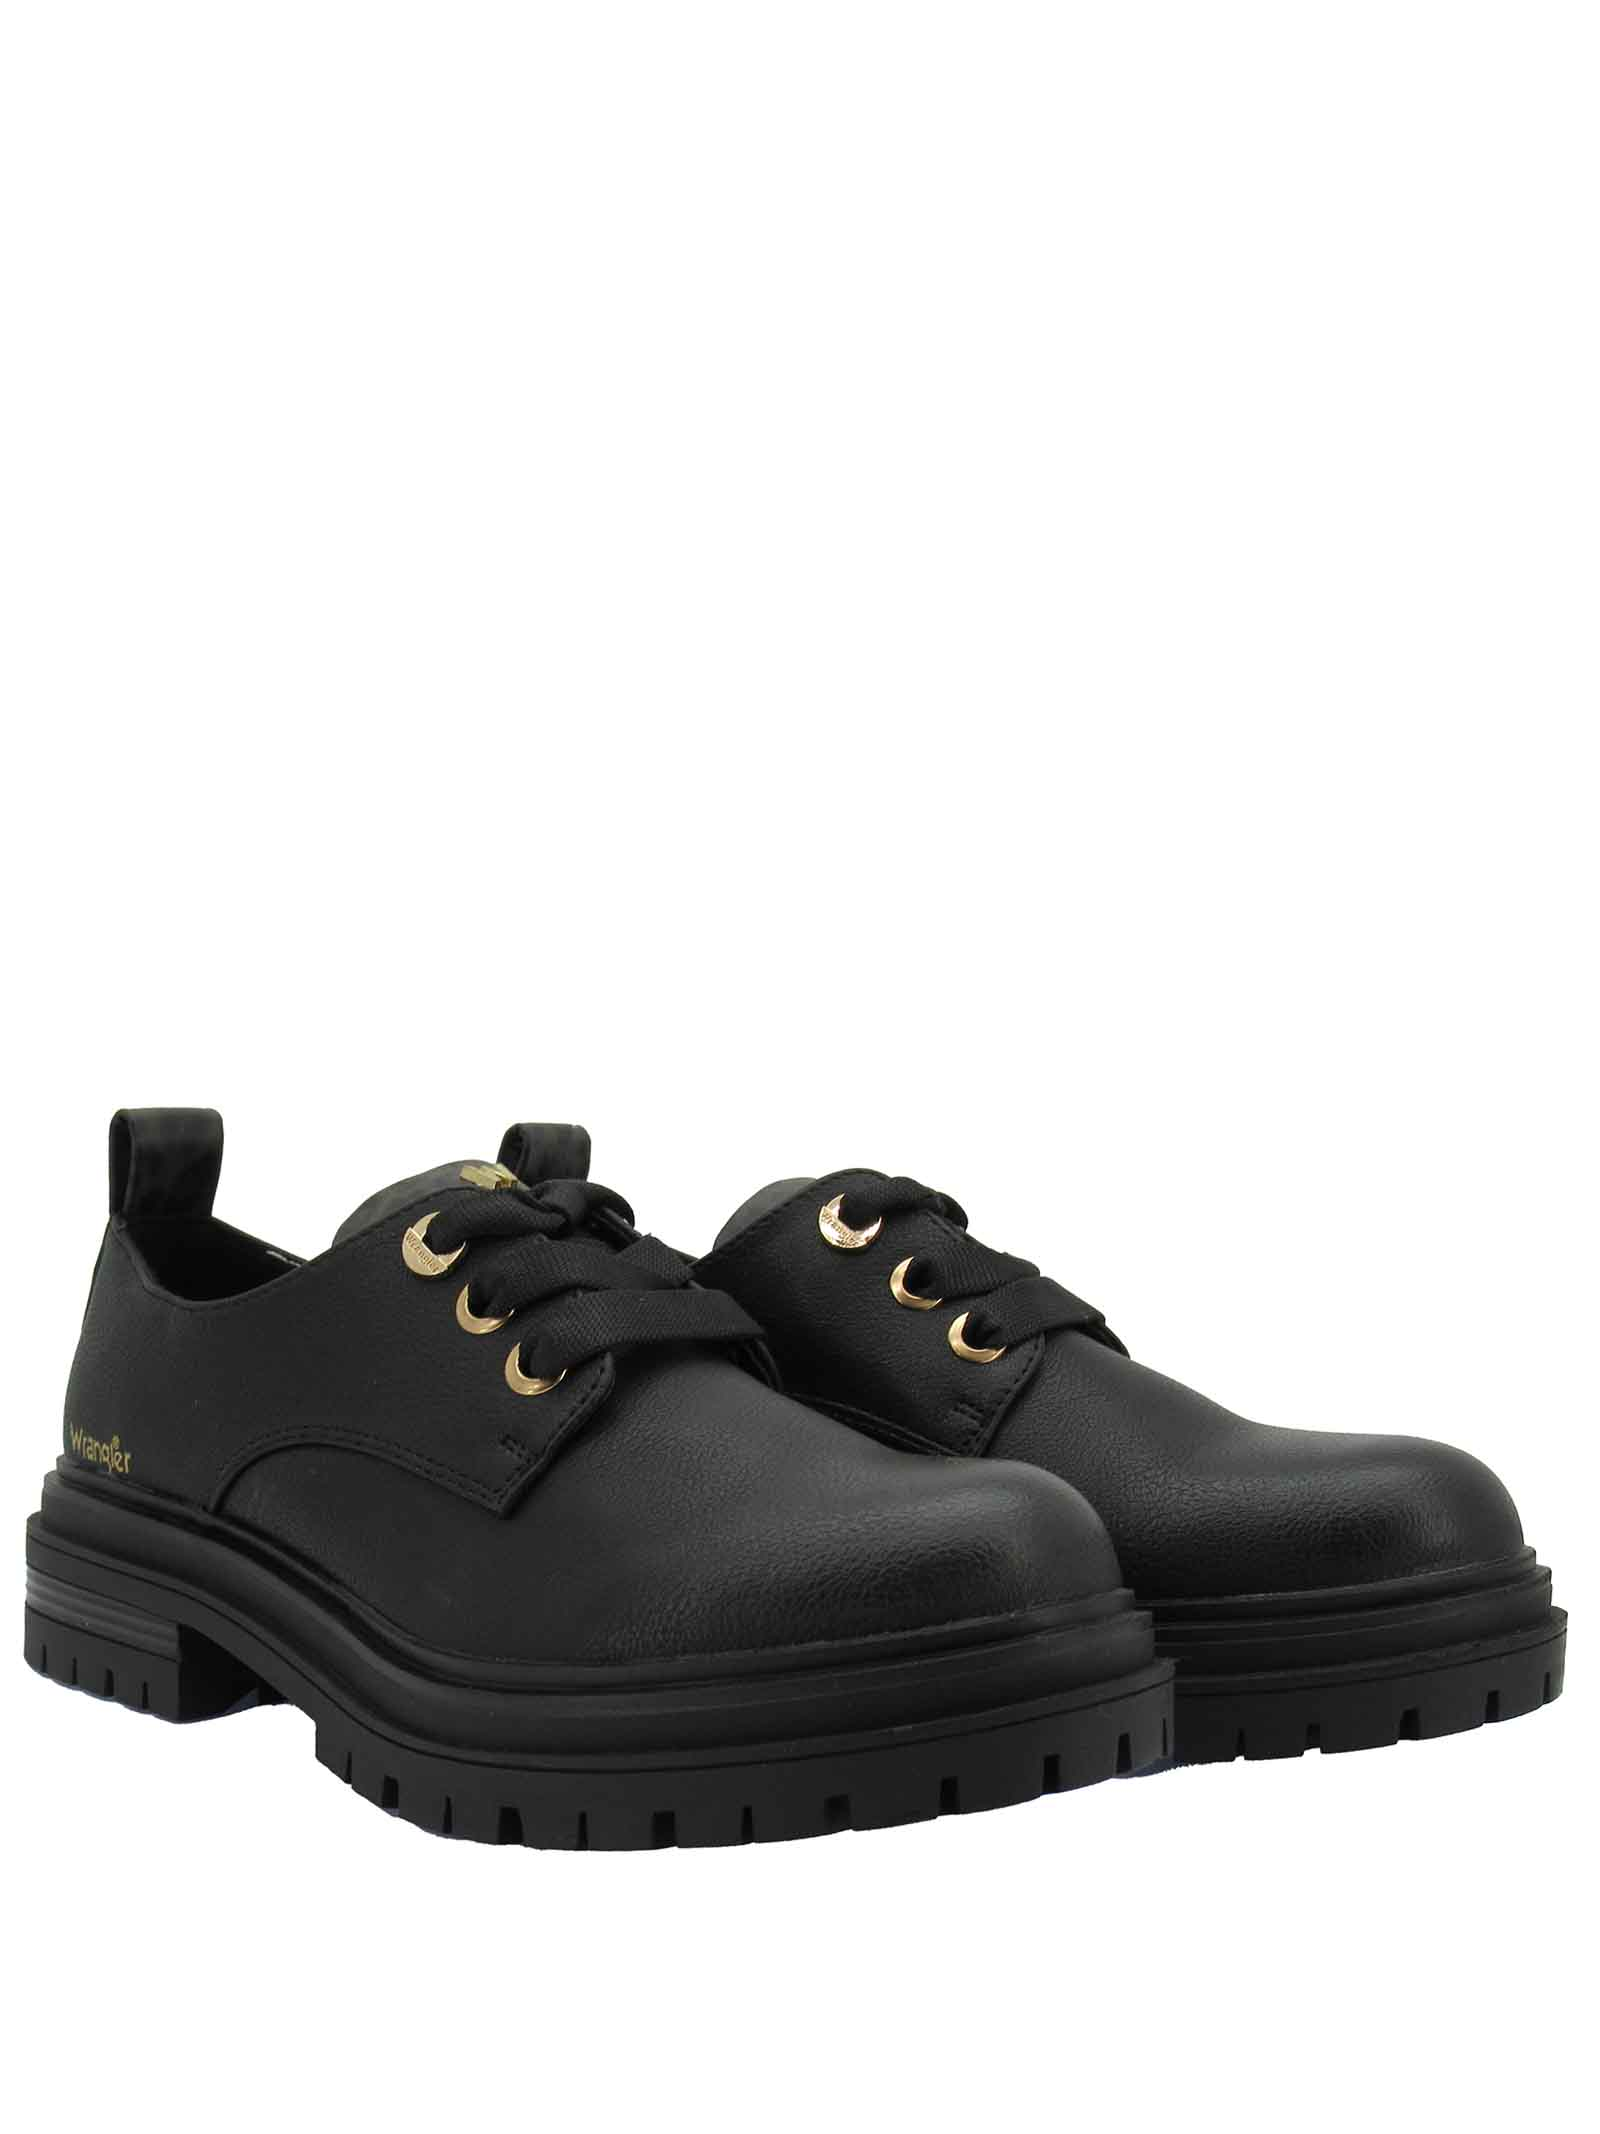 Women's Laced Shoes Courtney Safari Derby in Eco-leather Black with Animal Print and Rubber Sole Tank Wrangler | Lace up shoes | WL12618A866